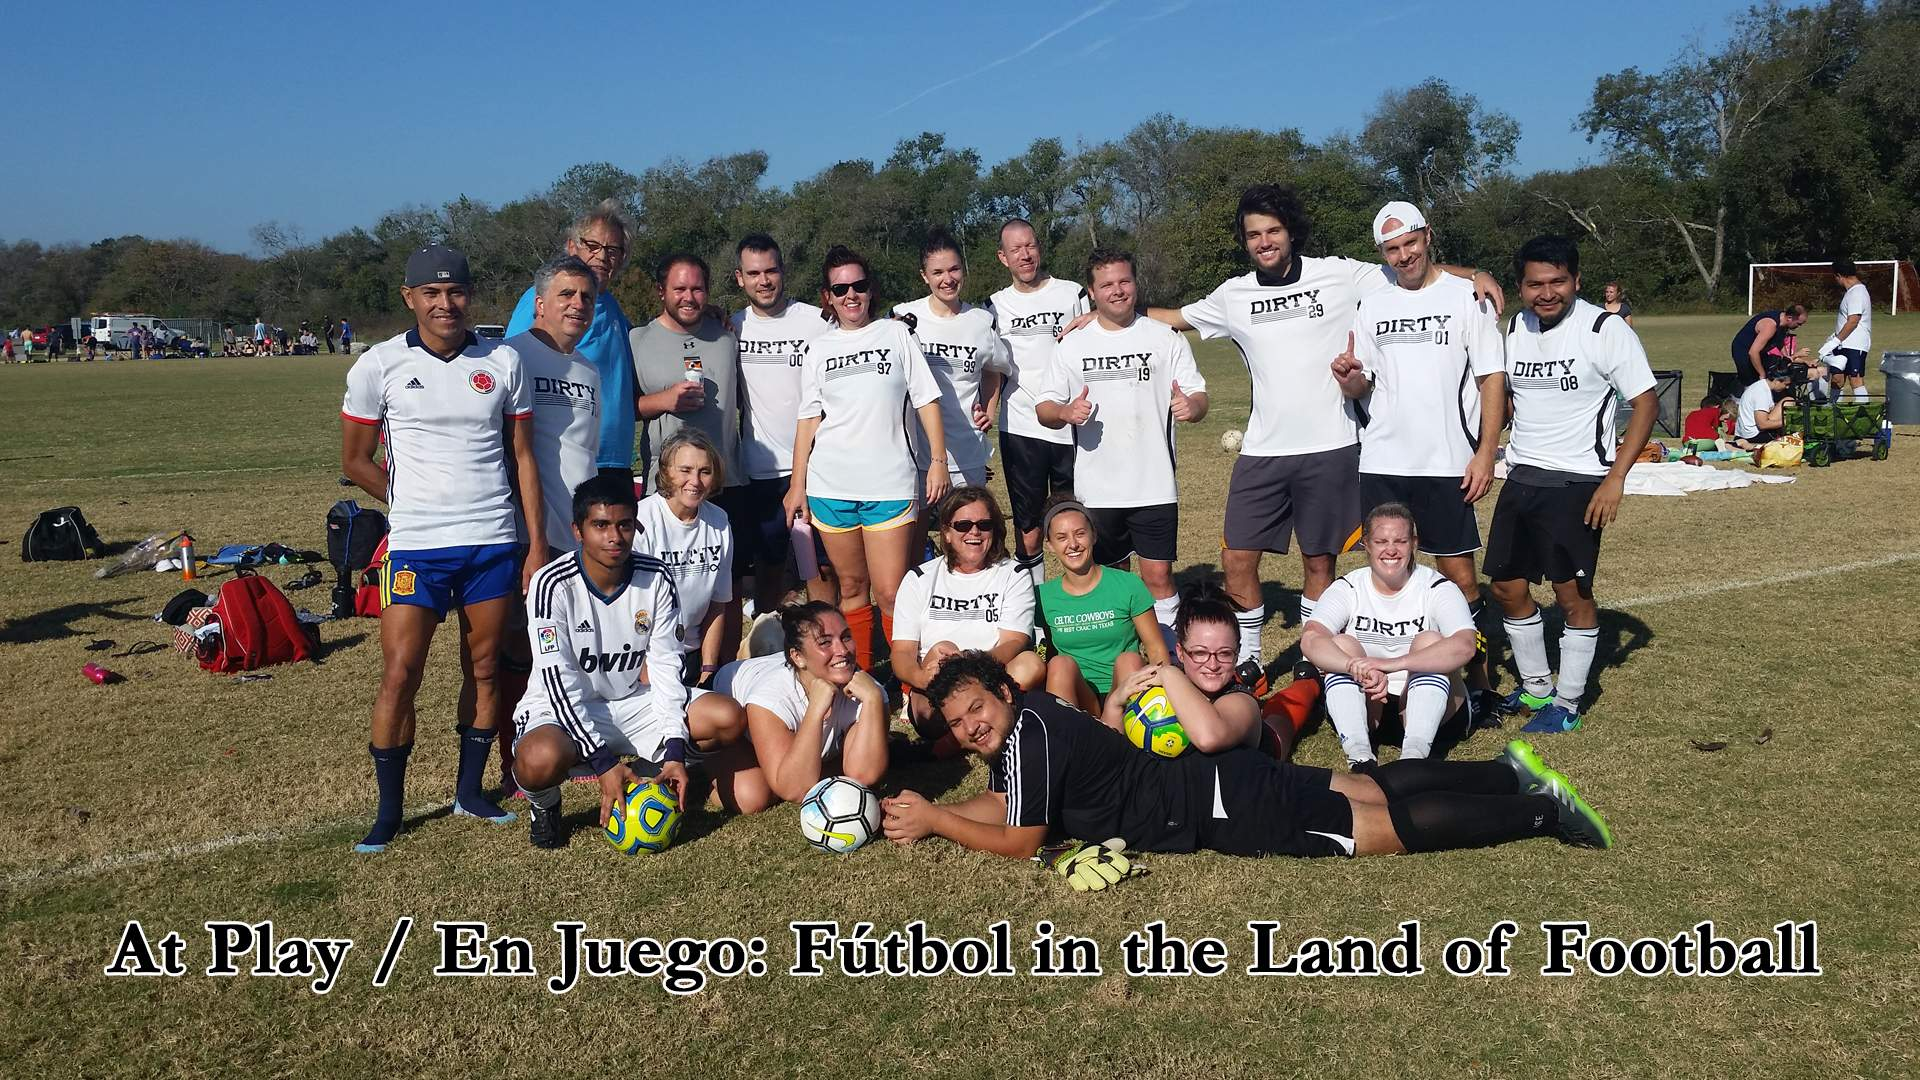 At Play / En Juego: Fútbol in the Land of Football